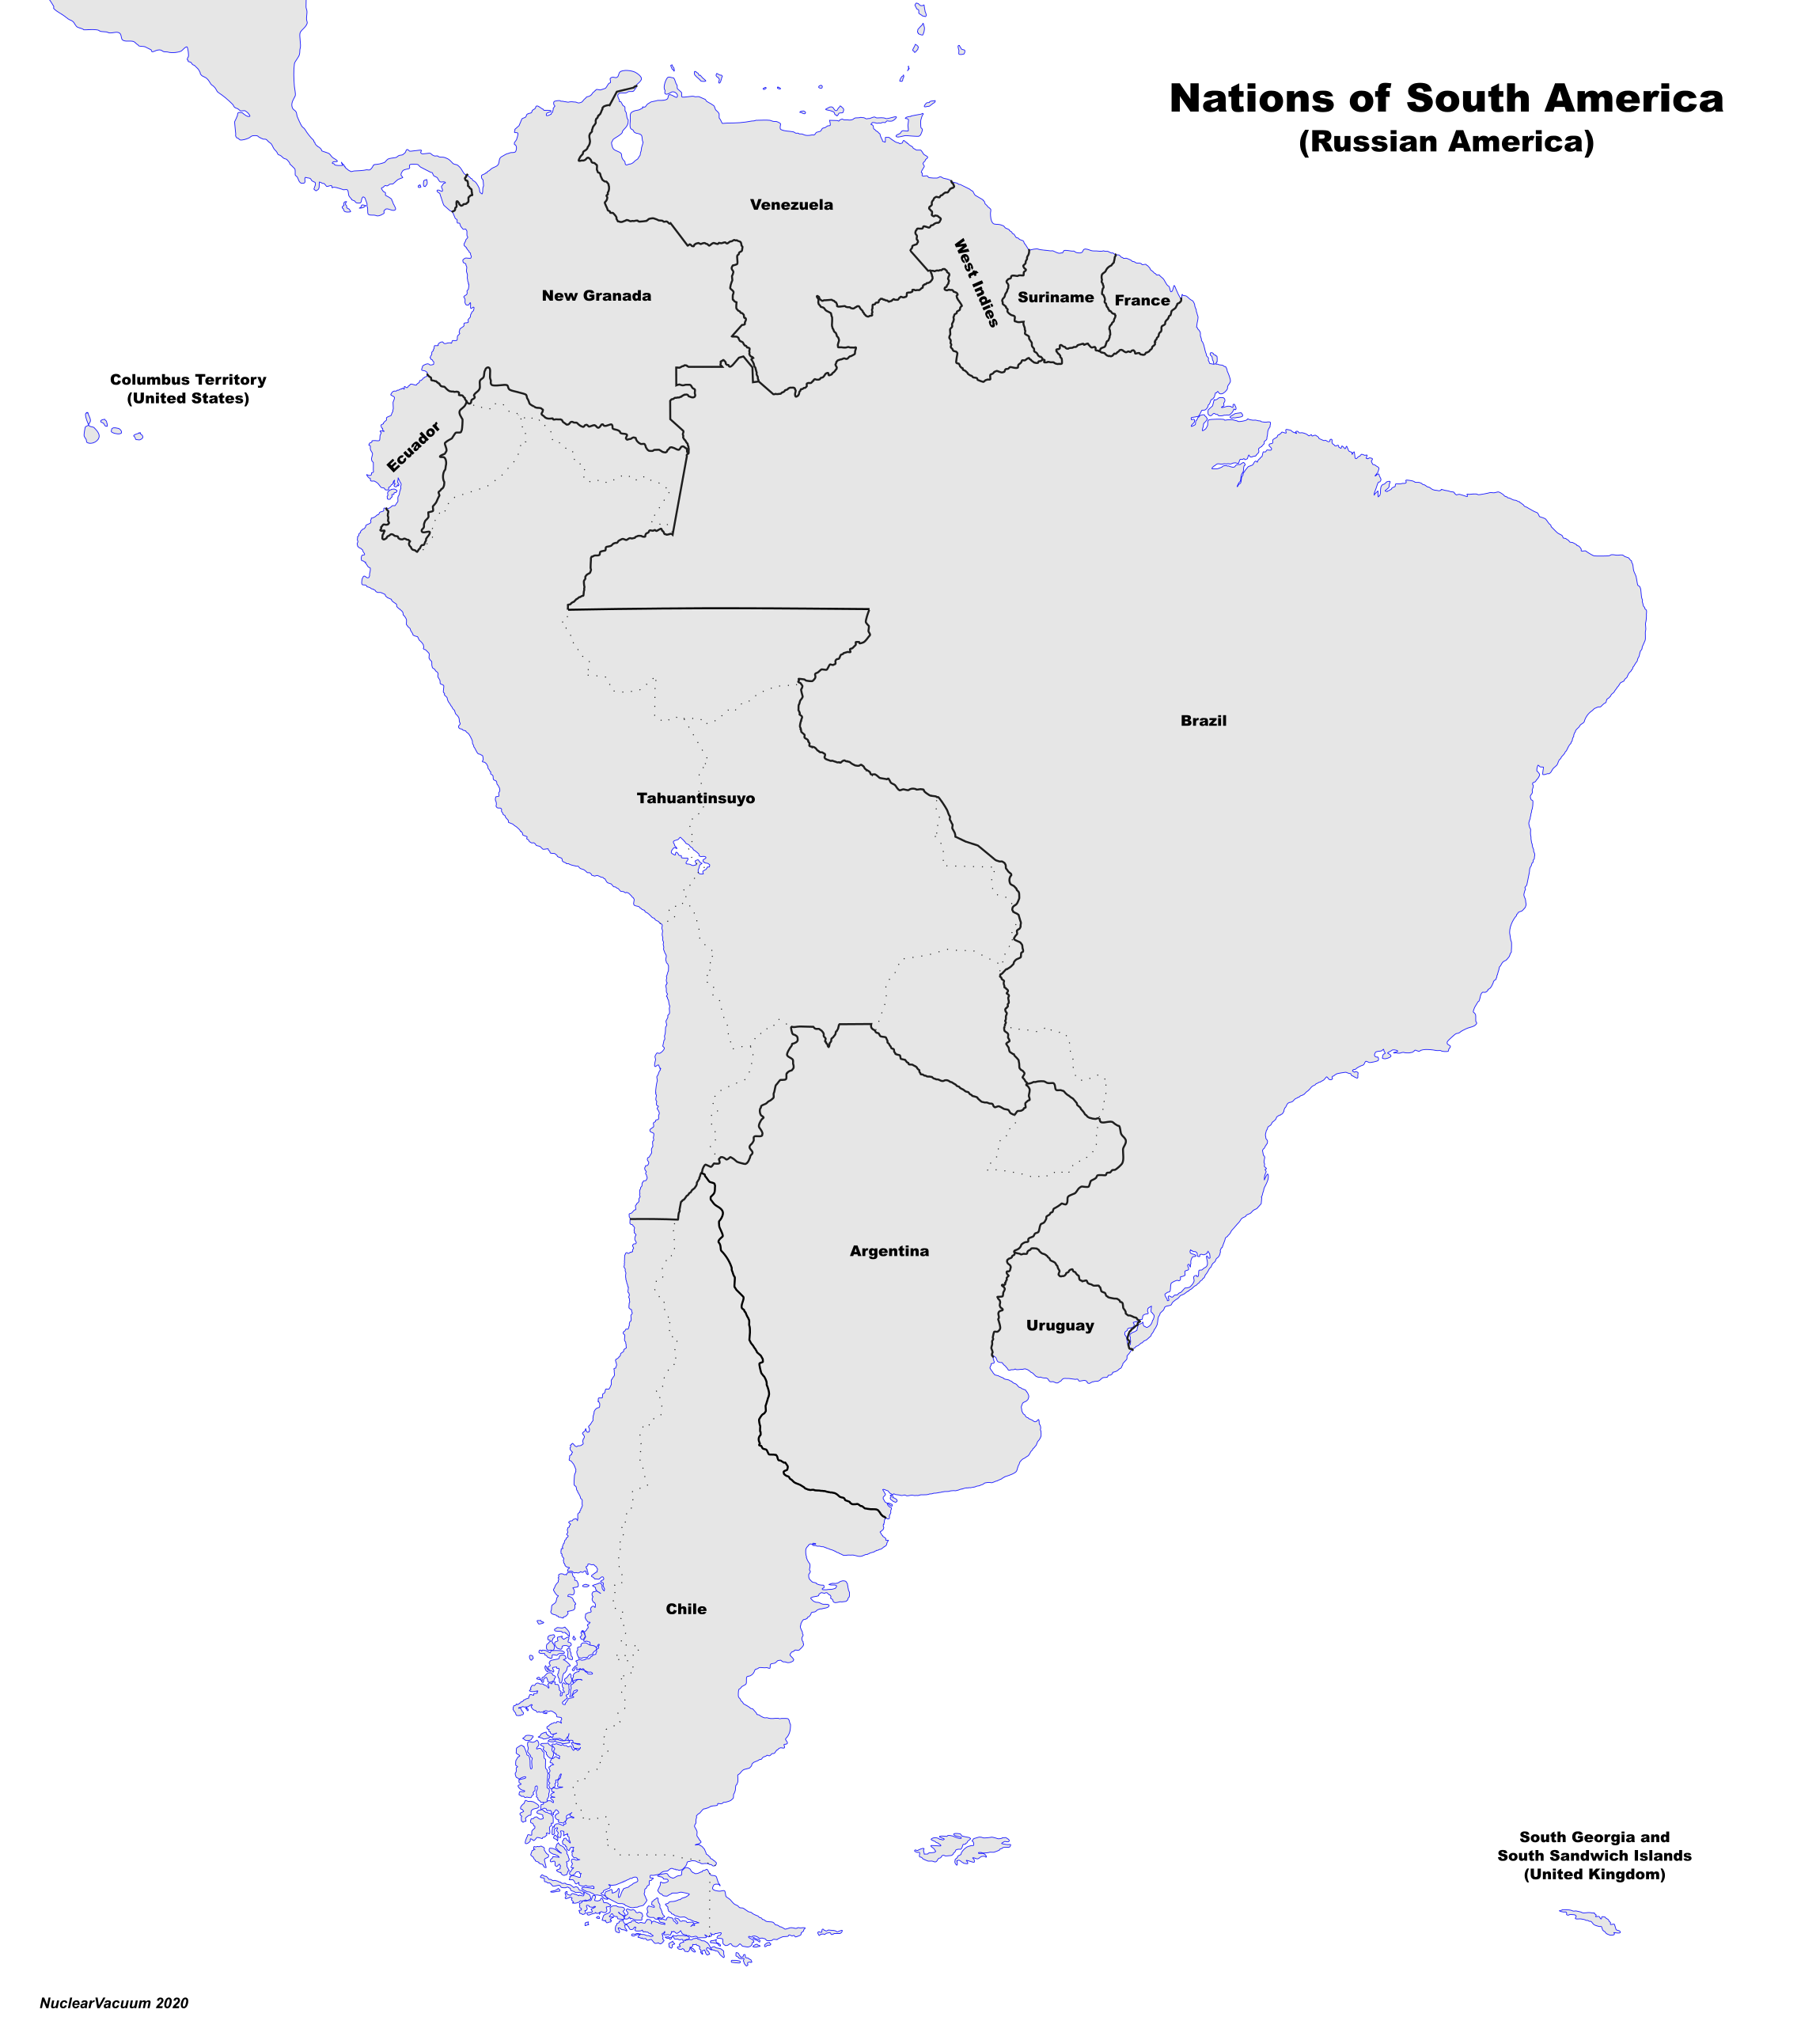 Image Map Of South America Russian Americapng Alternative - Ecuador south america map